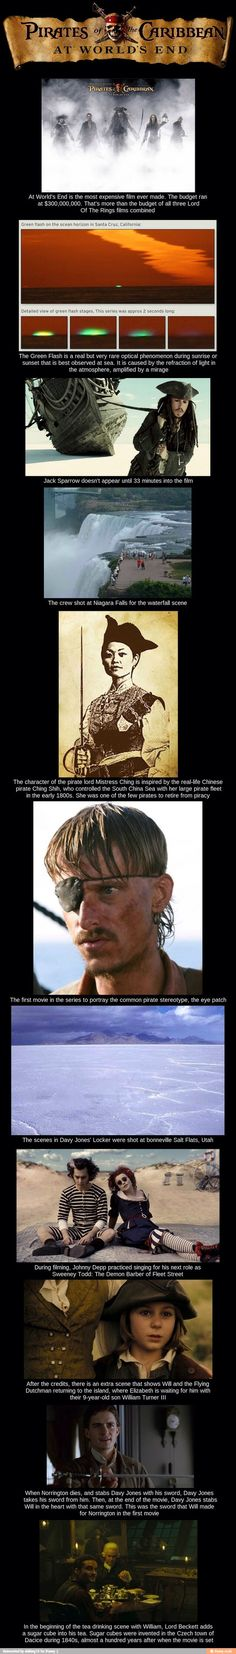 Pirates of the Caribbean. At World's End facts.